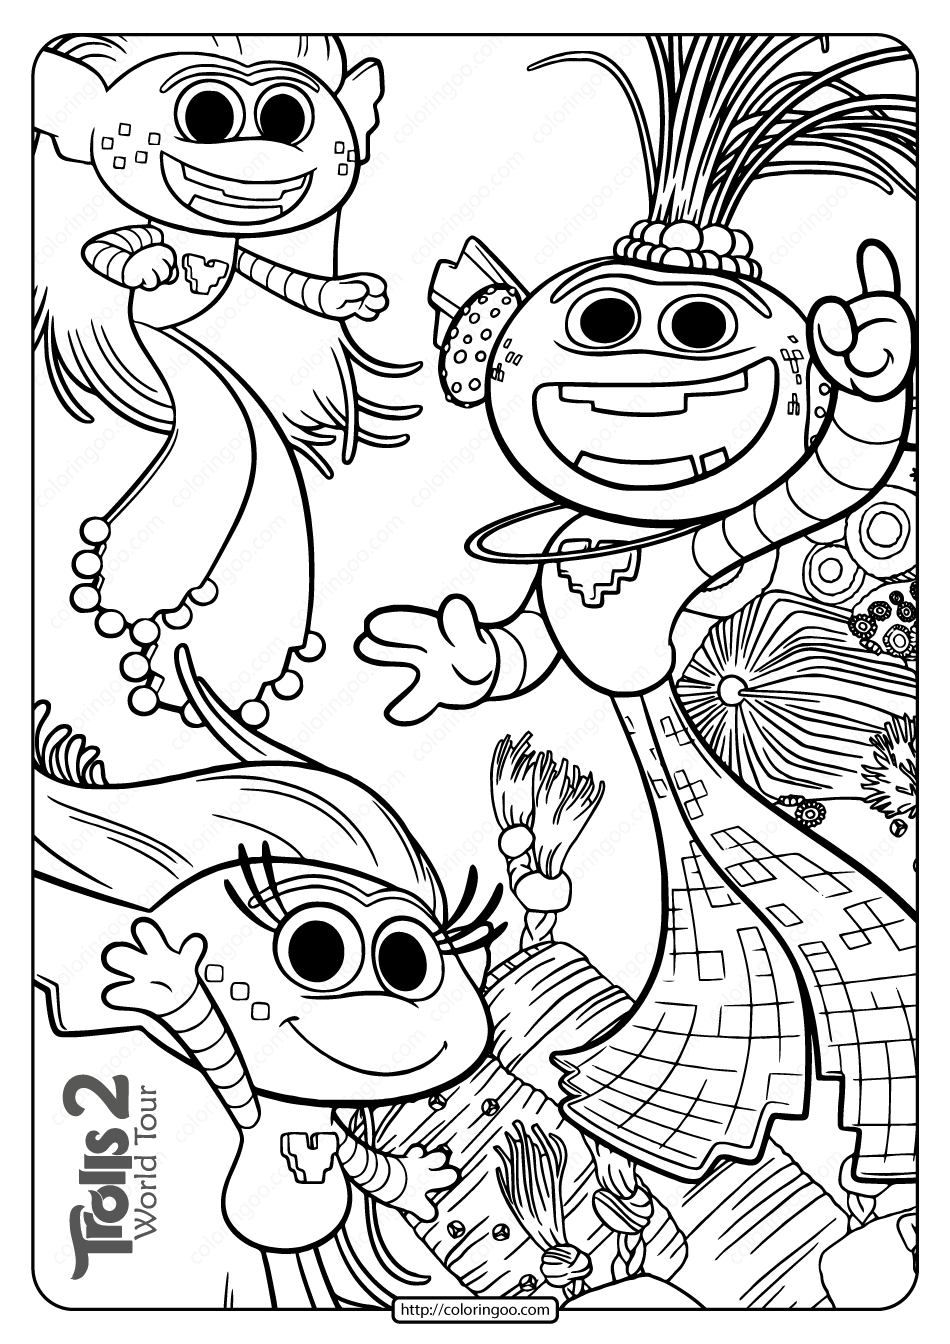 color pages printable zebra coloring pages free printable kids coloring pages pages color printable